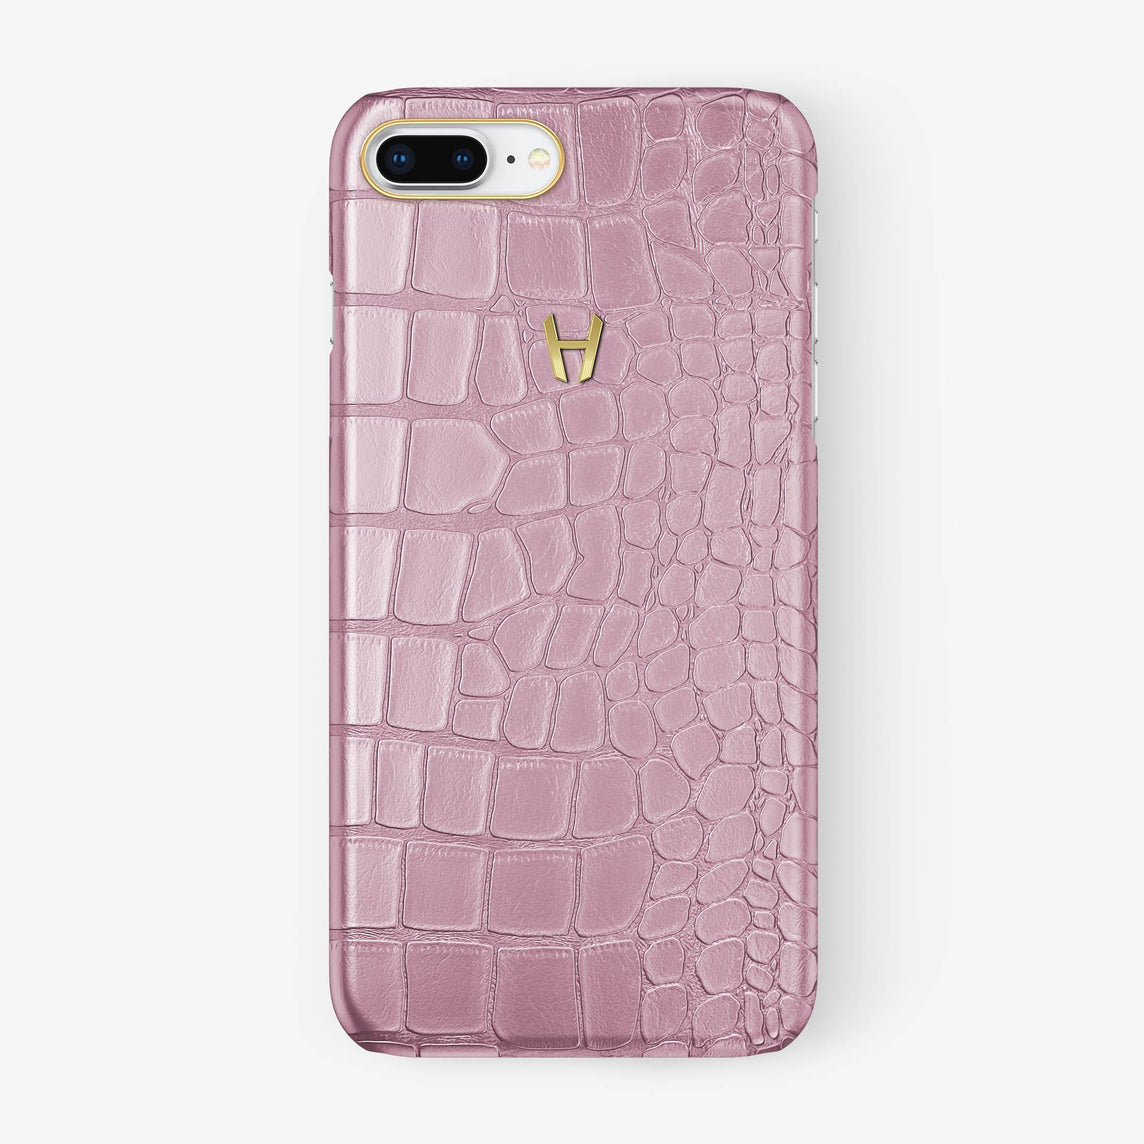 Alligator Case iPhone 7/8 Plus | Pink - Yellow Gold